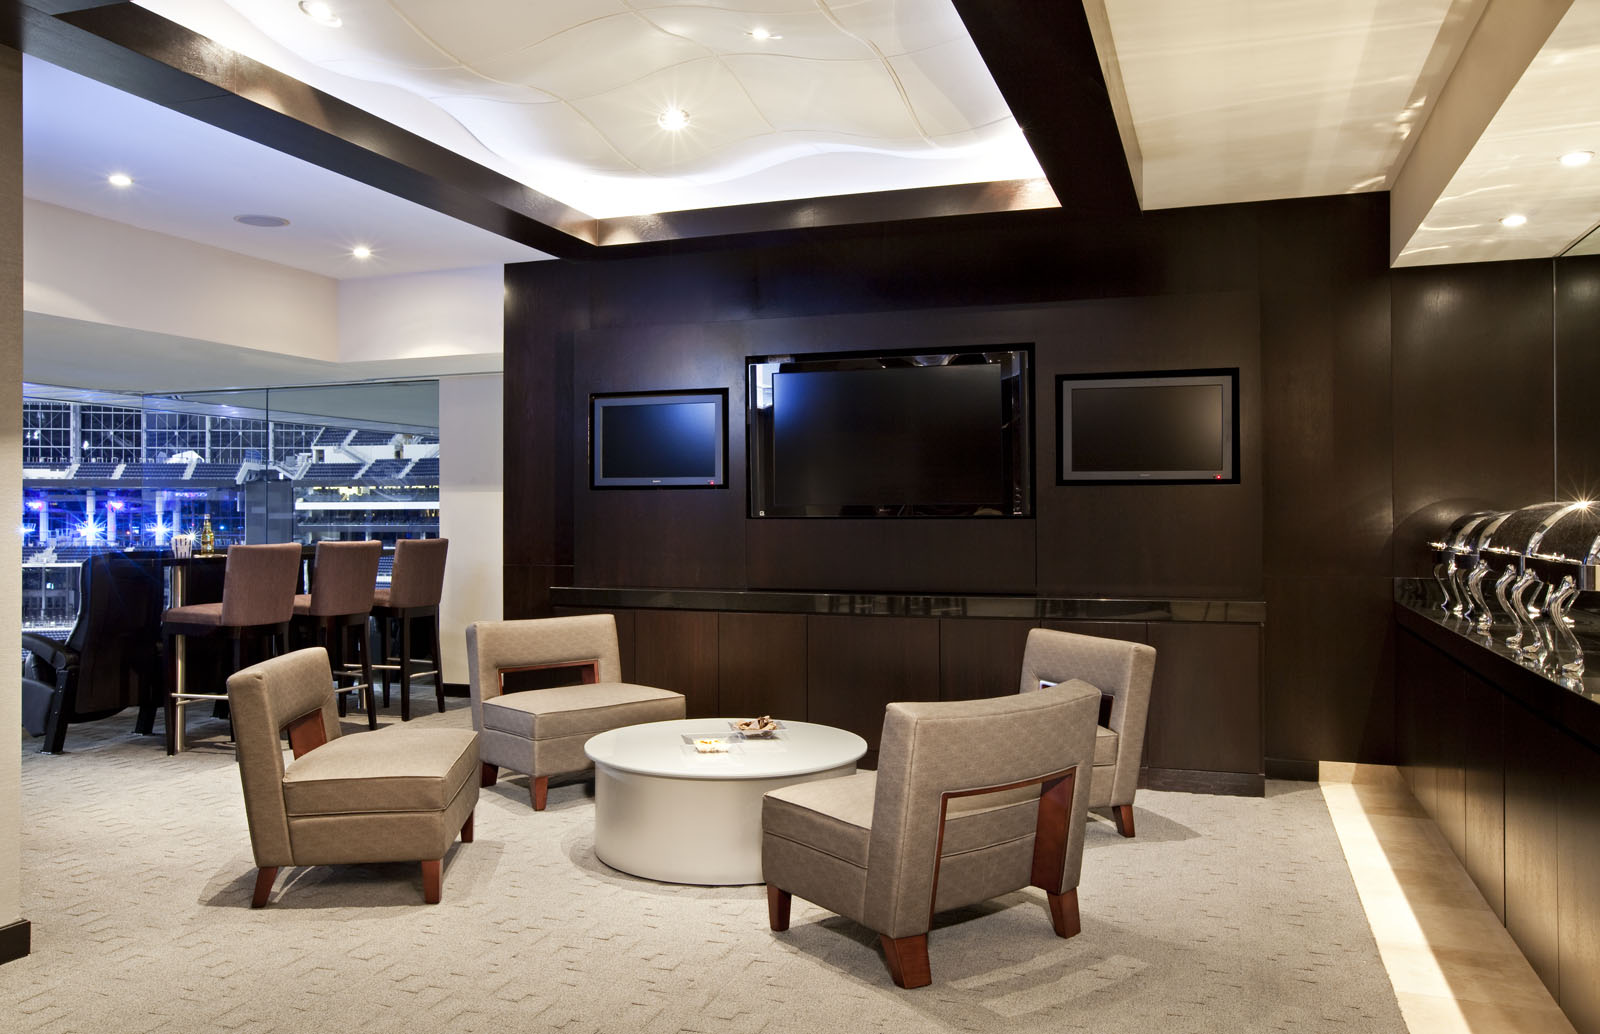 Nfl suites for Mercedes benz superdome parking prices